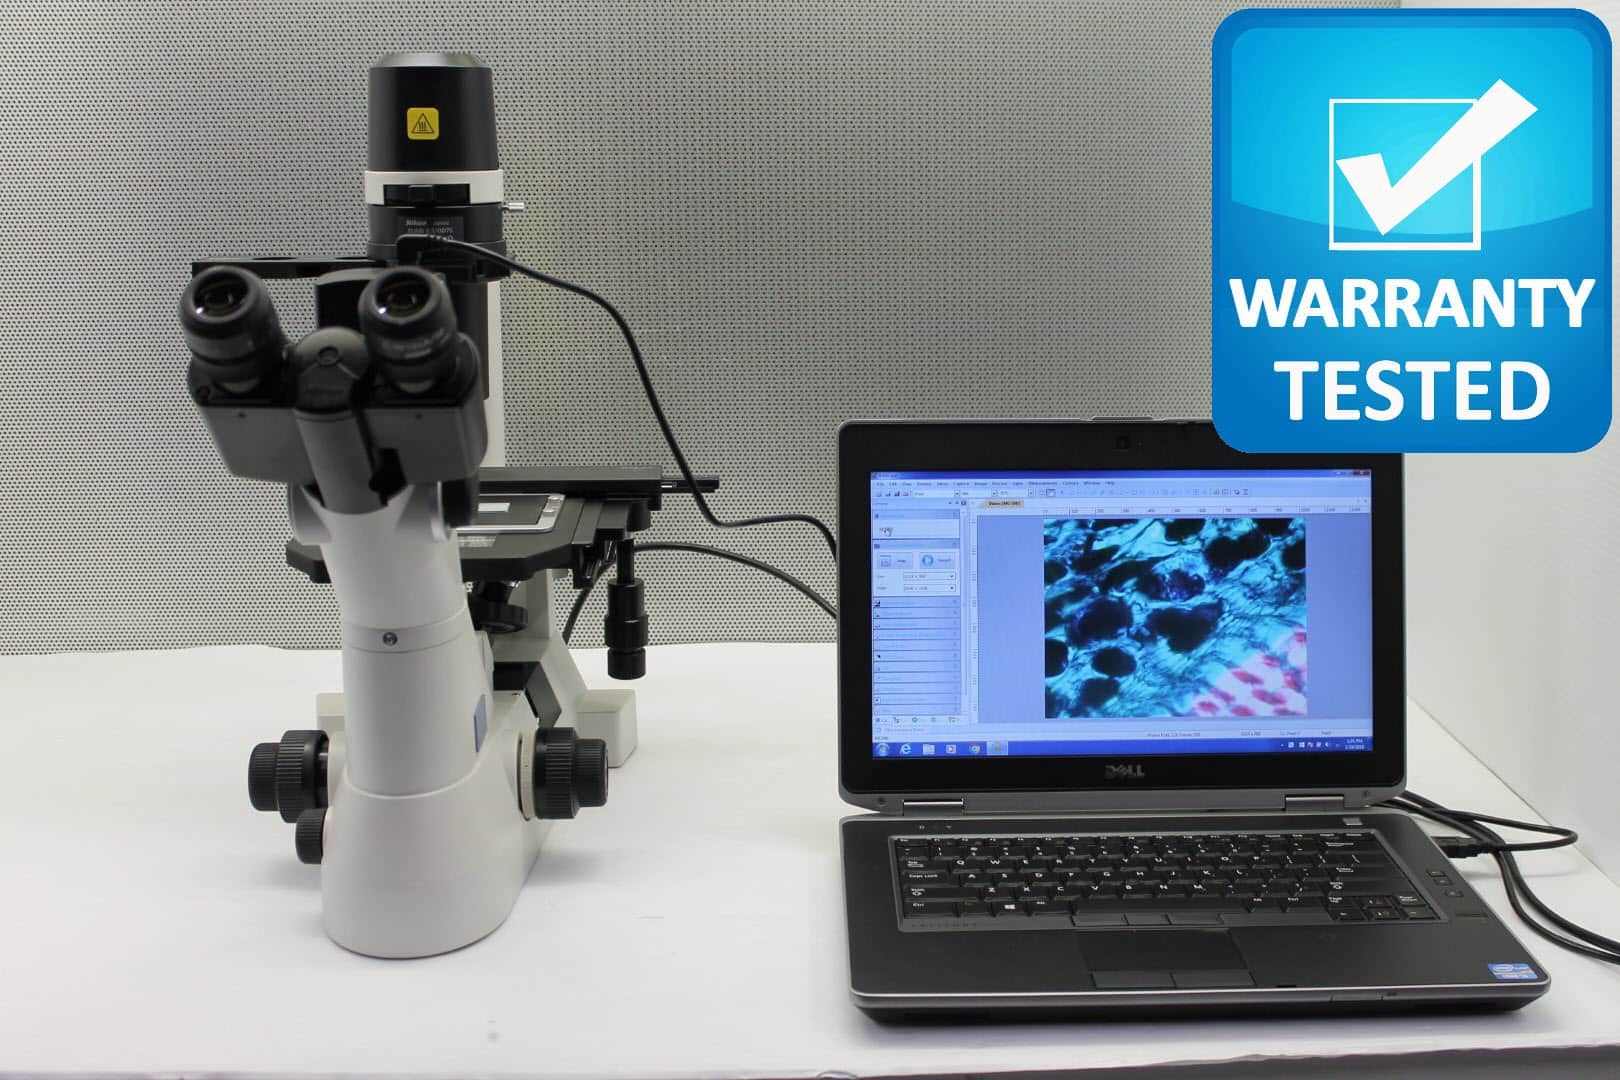 Nikon TS100 Inverted Phase Contrast Microscope